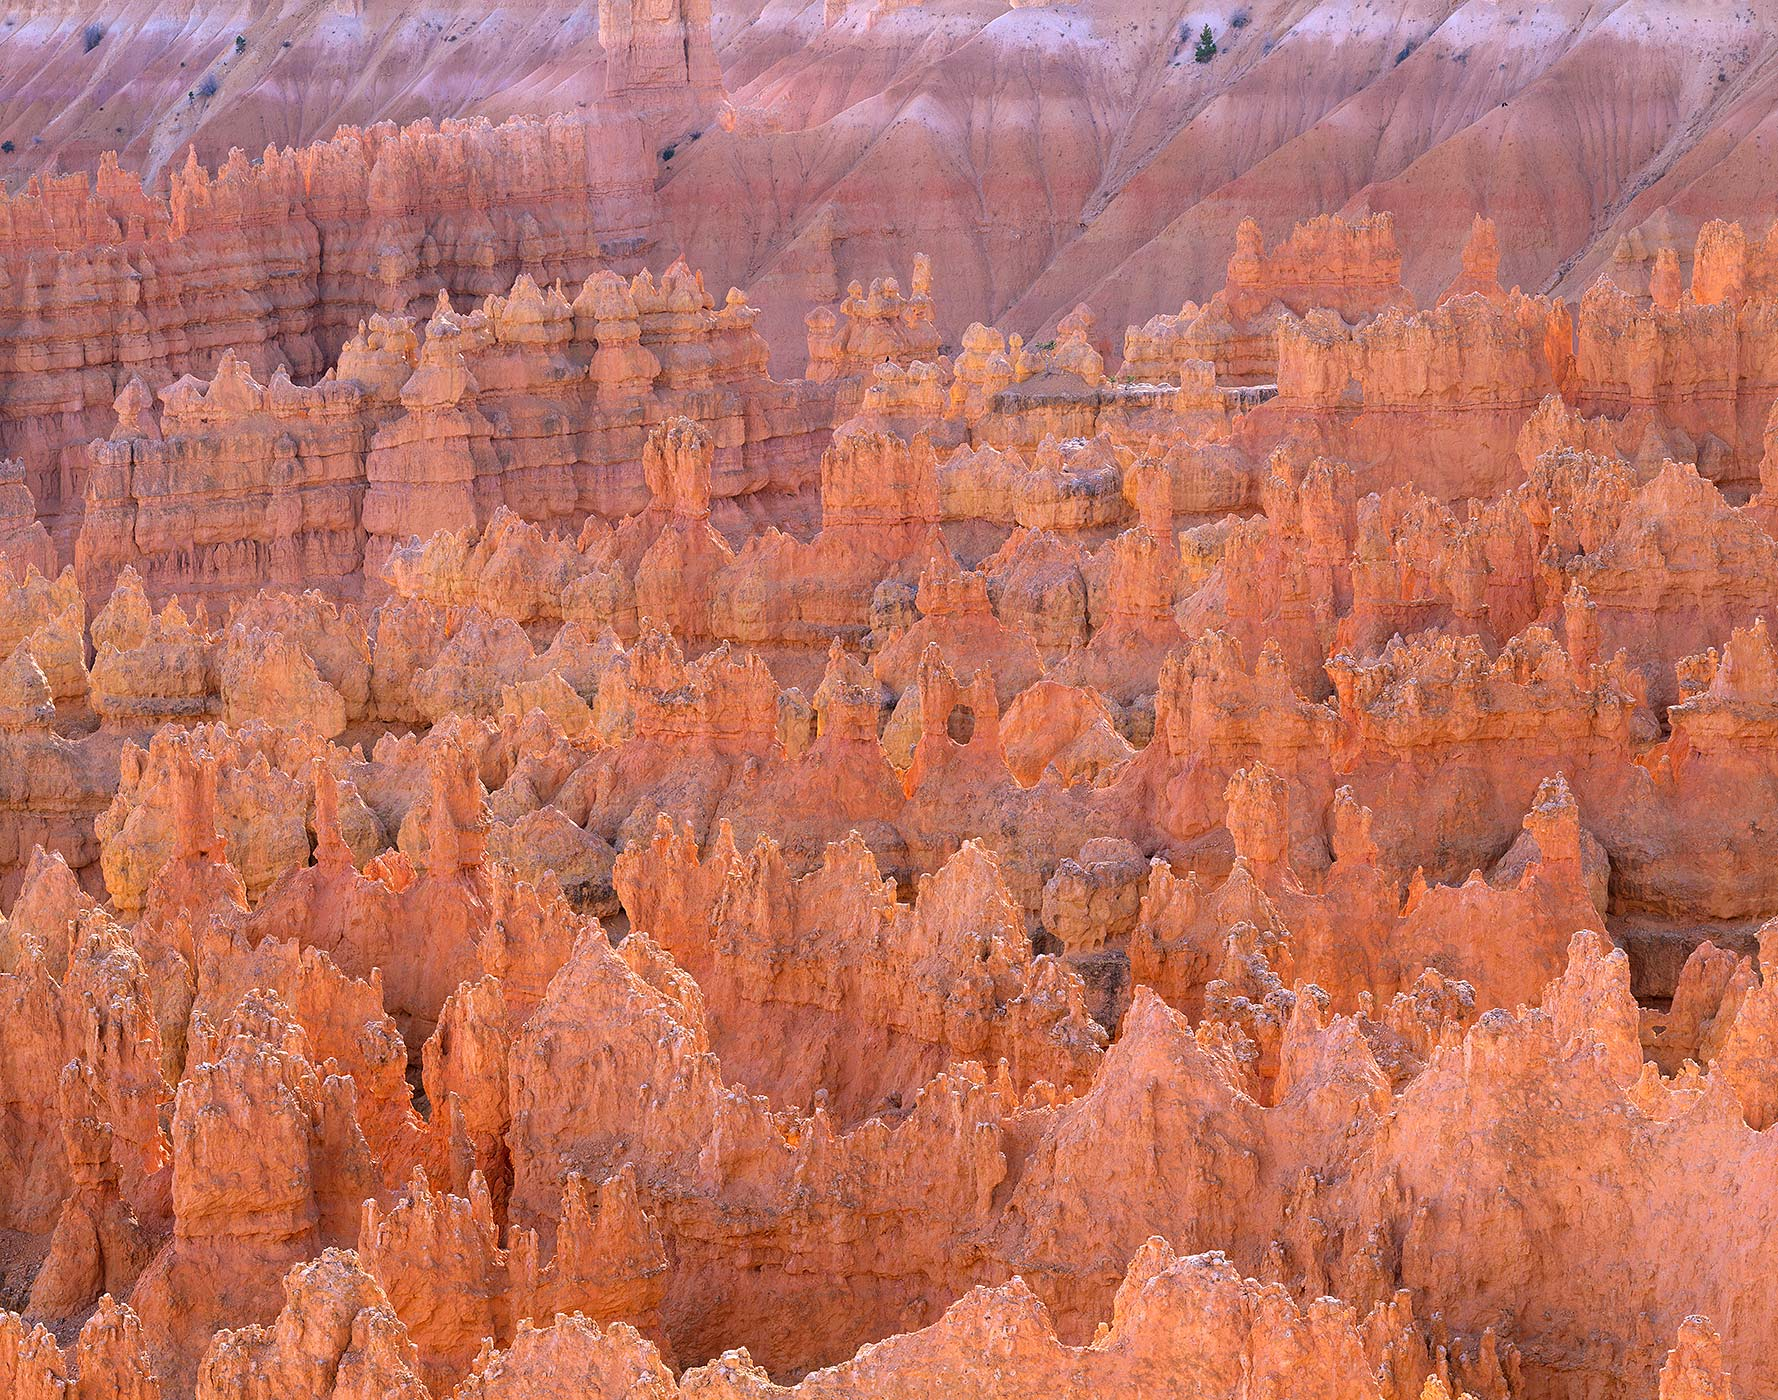 1026 Silent City, Bryce Canyon National Park, Utah